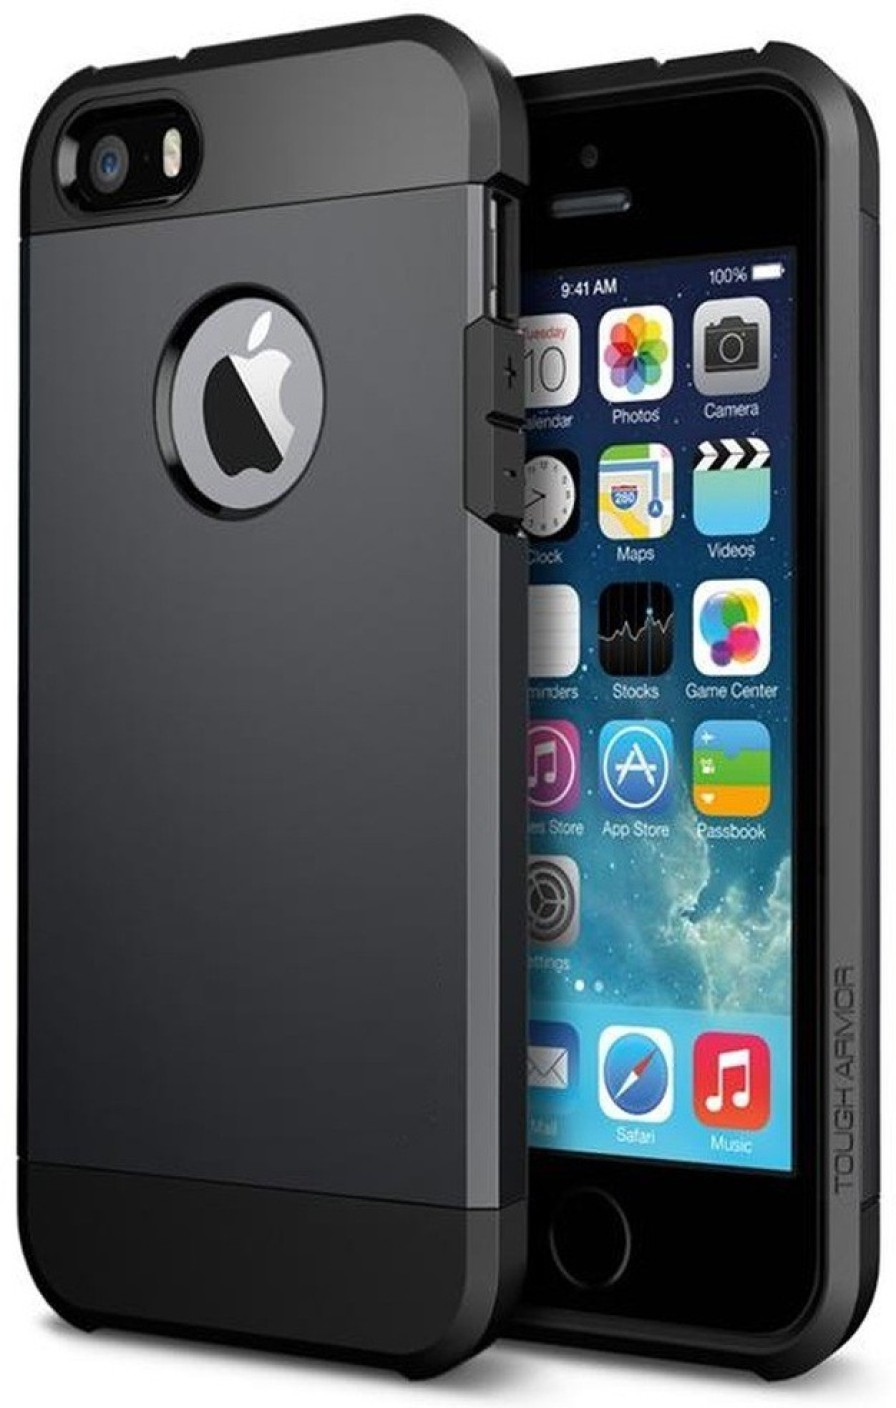 iphone 5s back cover mv back cover for apple iphone 5s mv flipkart 14740